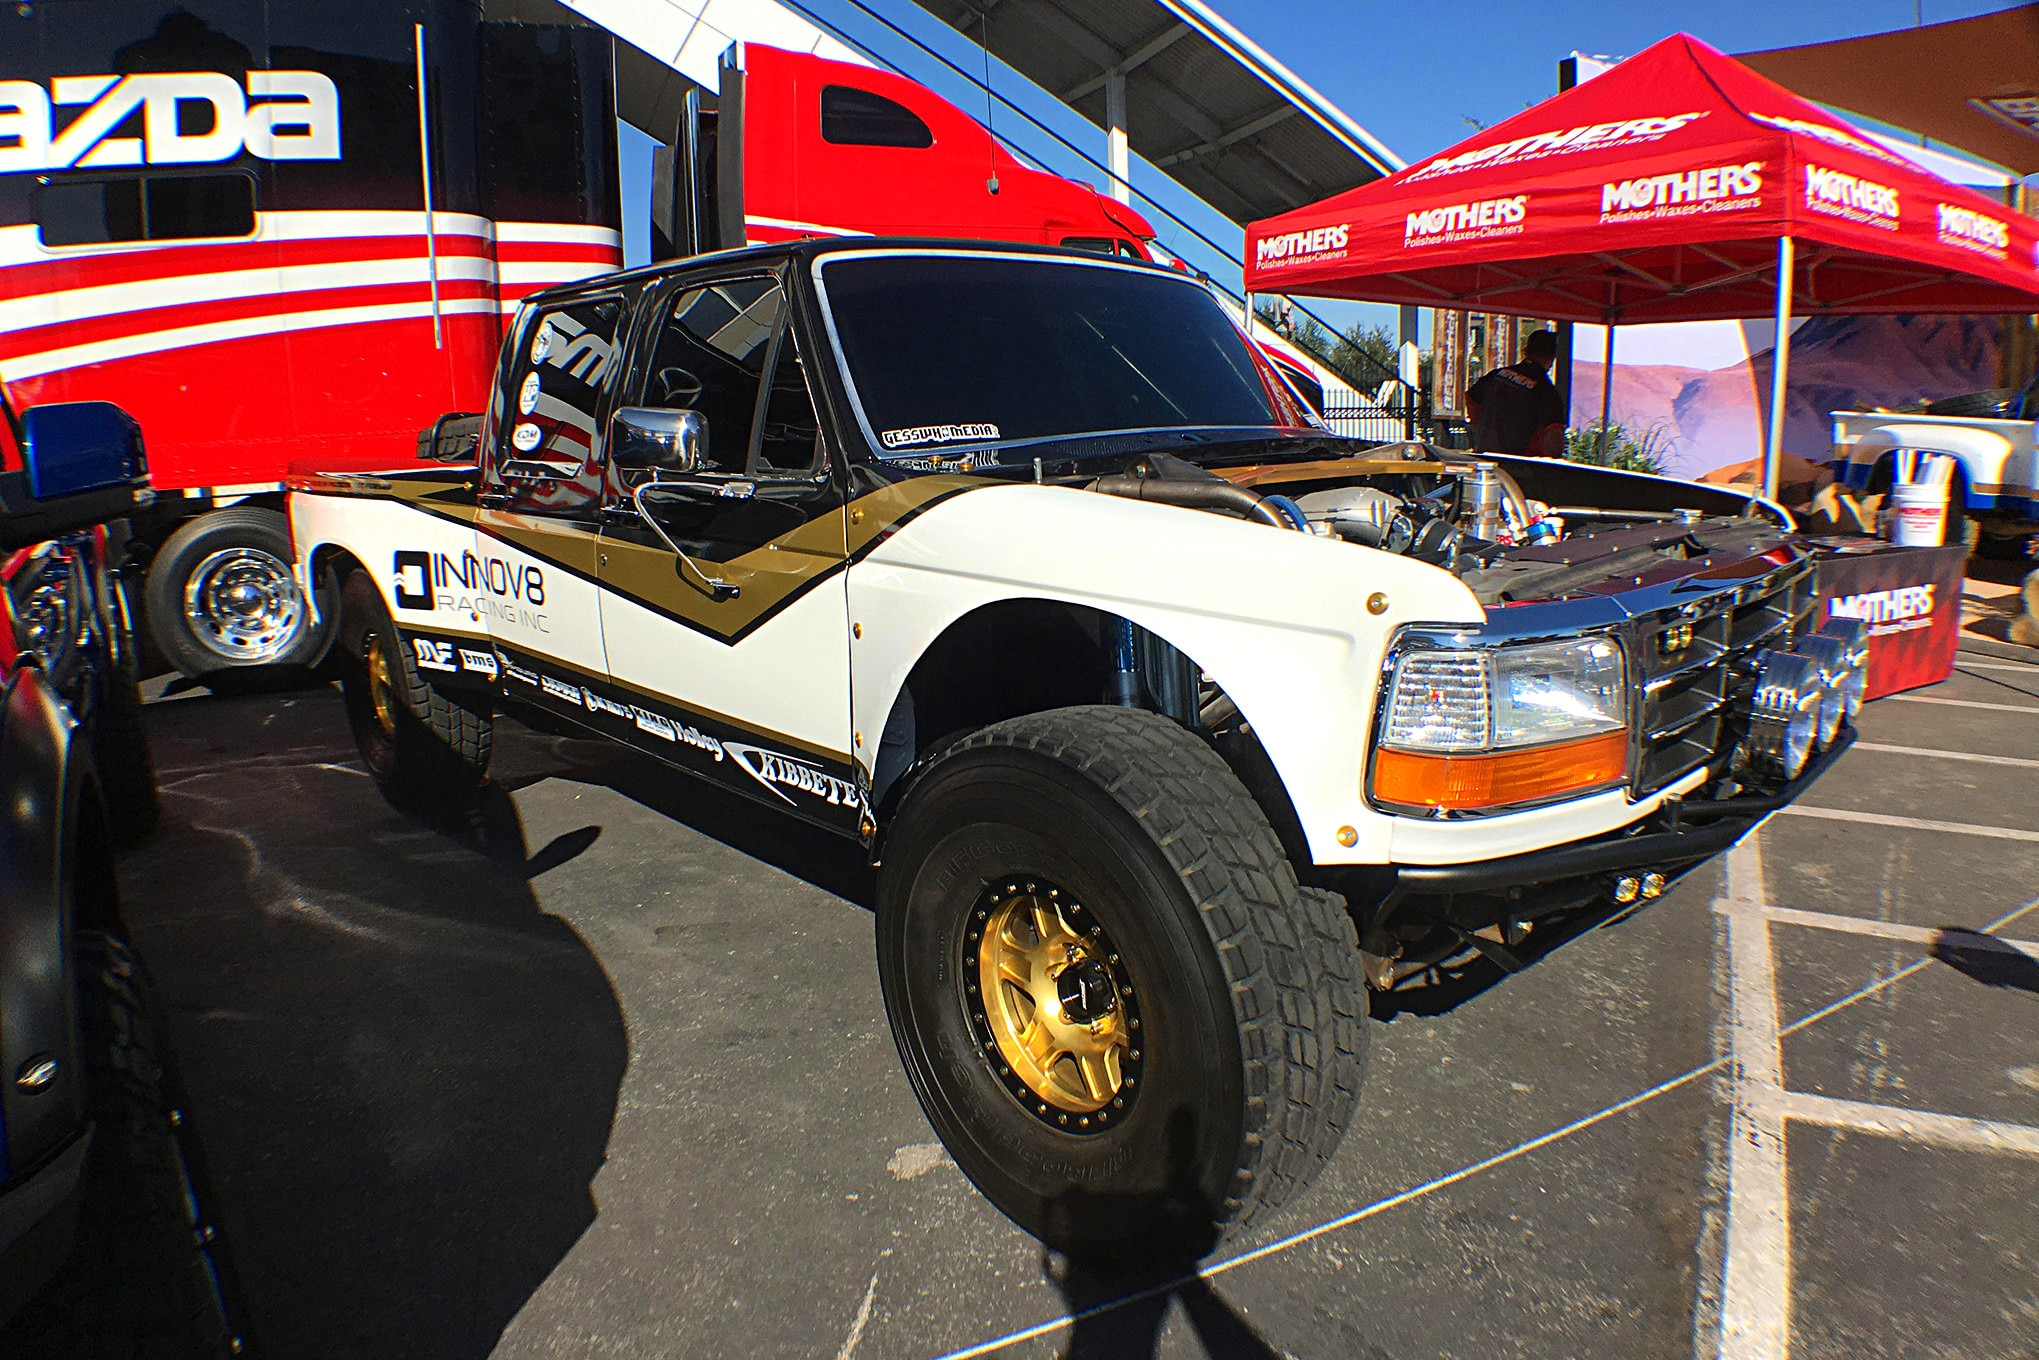 Kibbetech had their latest creation on hand. They're always building great prerunners, and they're made to be driven hard.